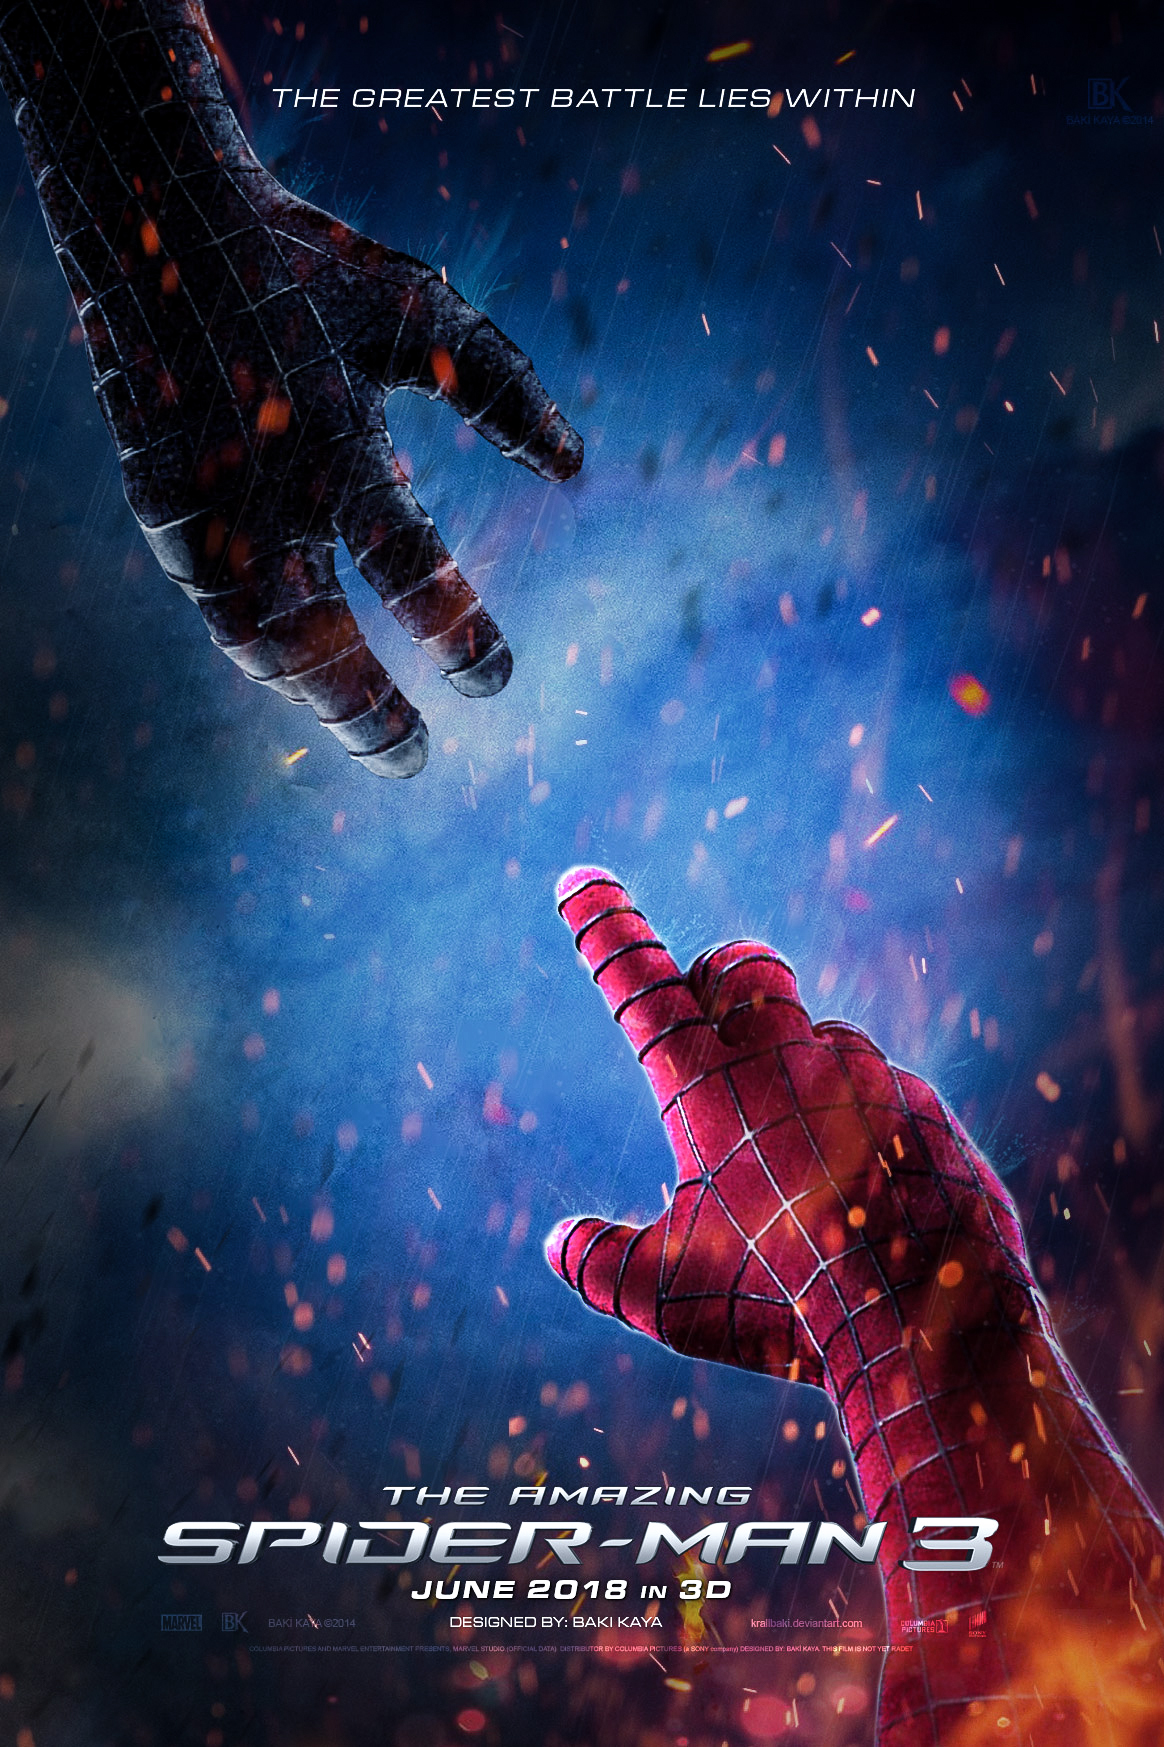 The Amazing Spider-Man 3 Poster by bakikayaa on DeviantArt